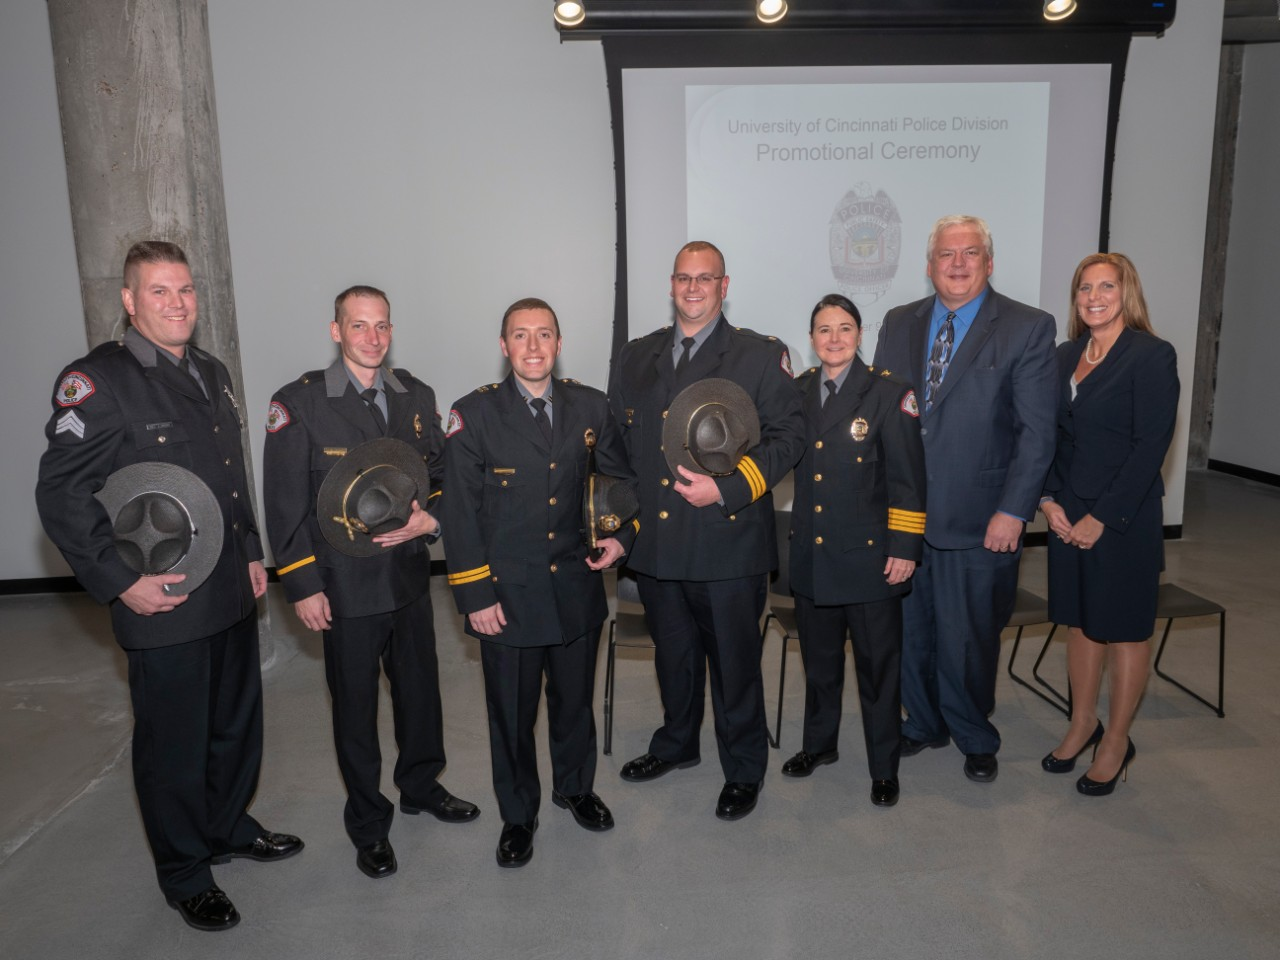 Vice President of Safety and Reform Robin Engel, Director of Public Safety James Whalen and UC Police Chief Maris Herold stand with the four newly promoted officer during a ceremony on Nov. 9.